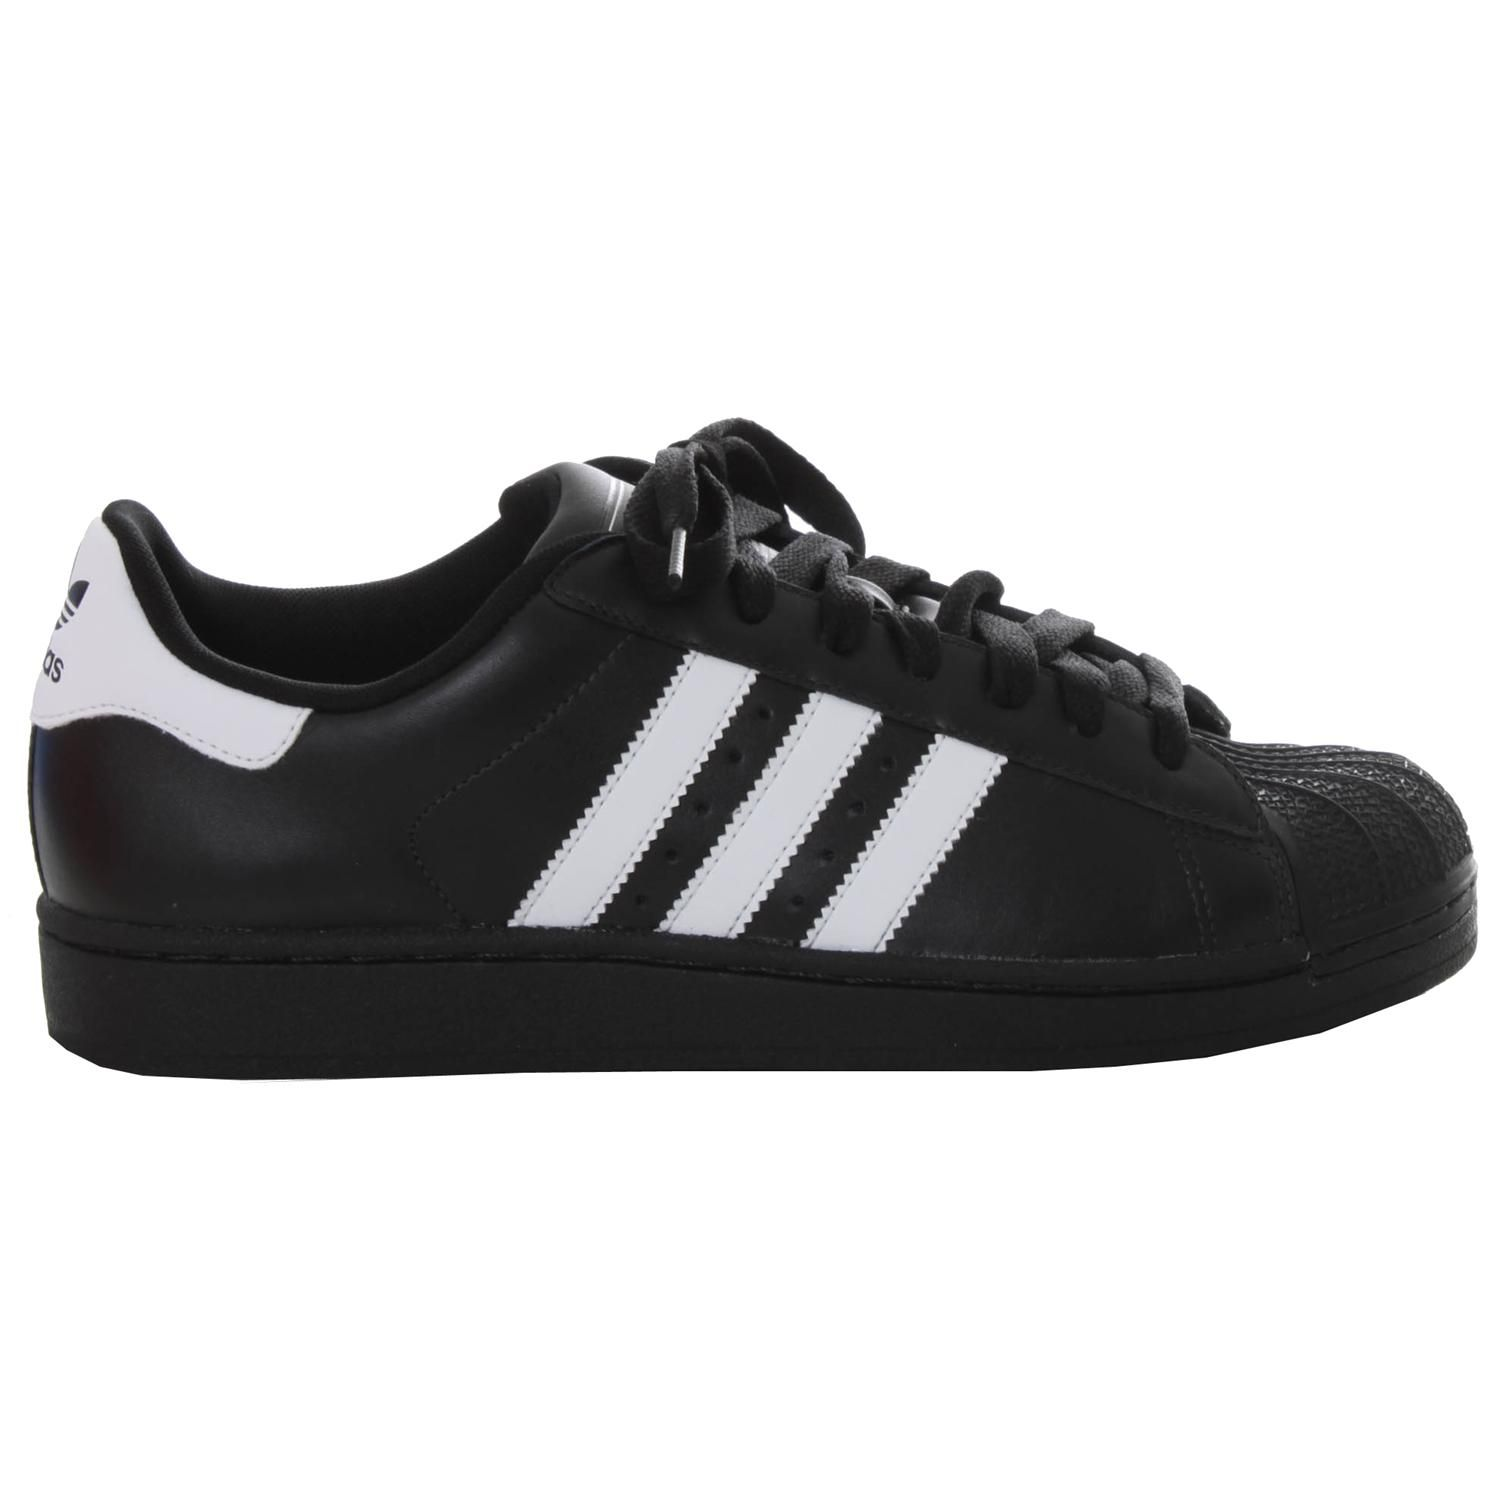 c87df9c011b2 ... france hand painted adidas superstars with a faded shade from blue  white on the famous adidas